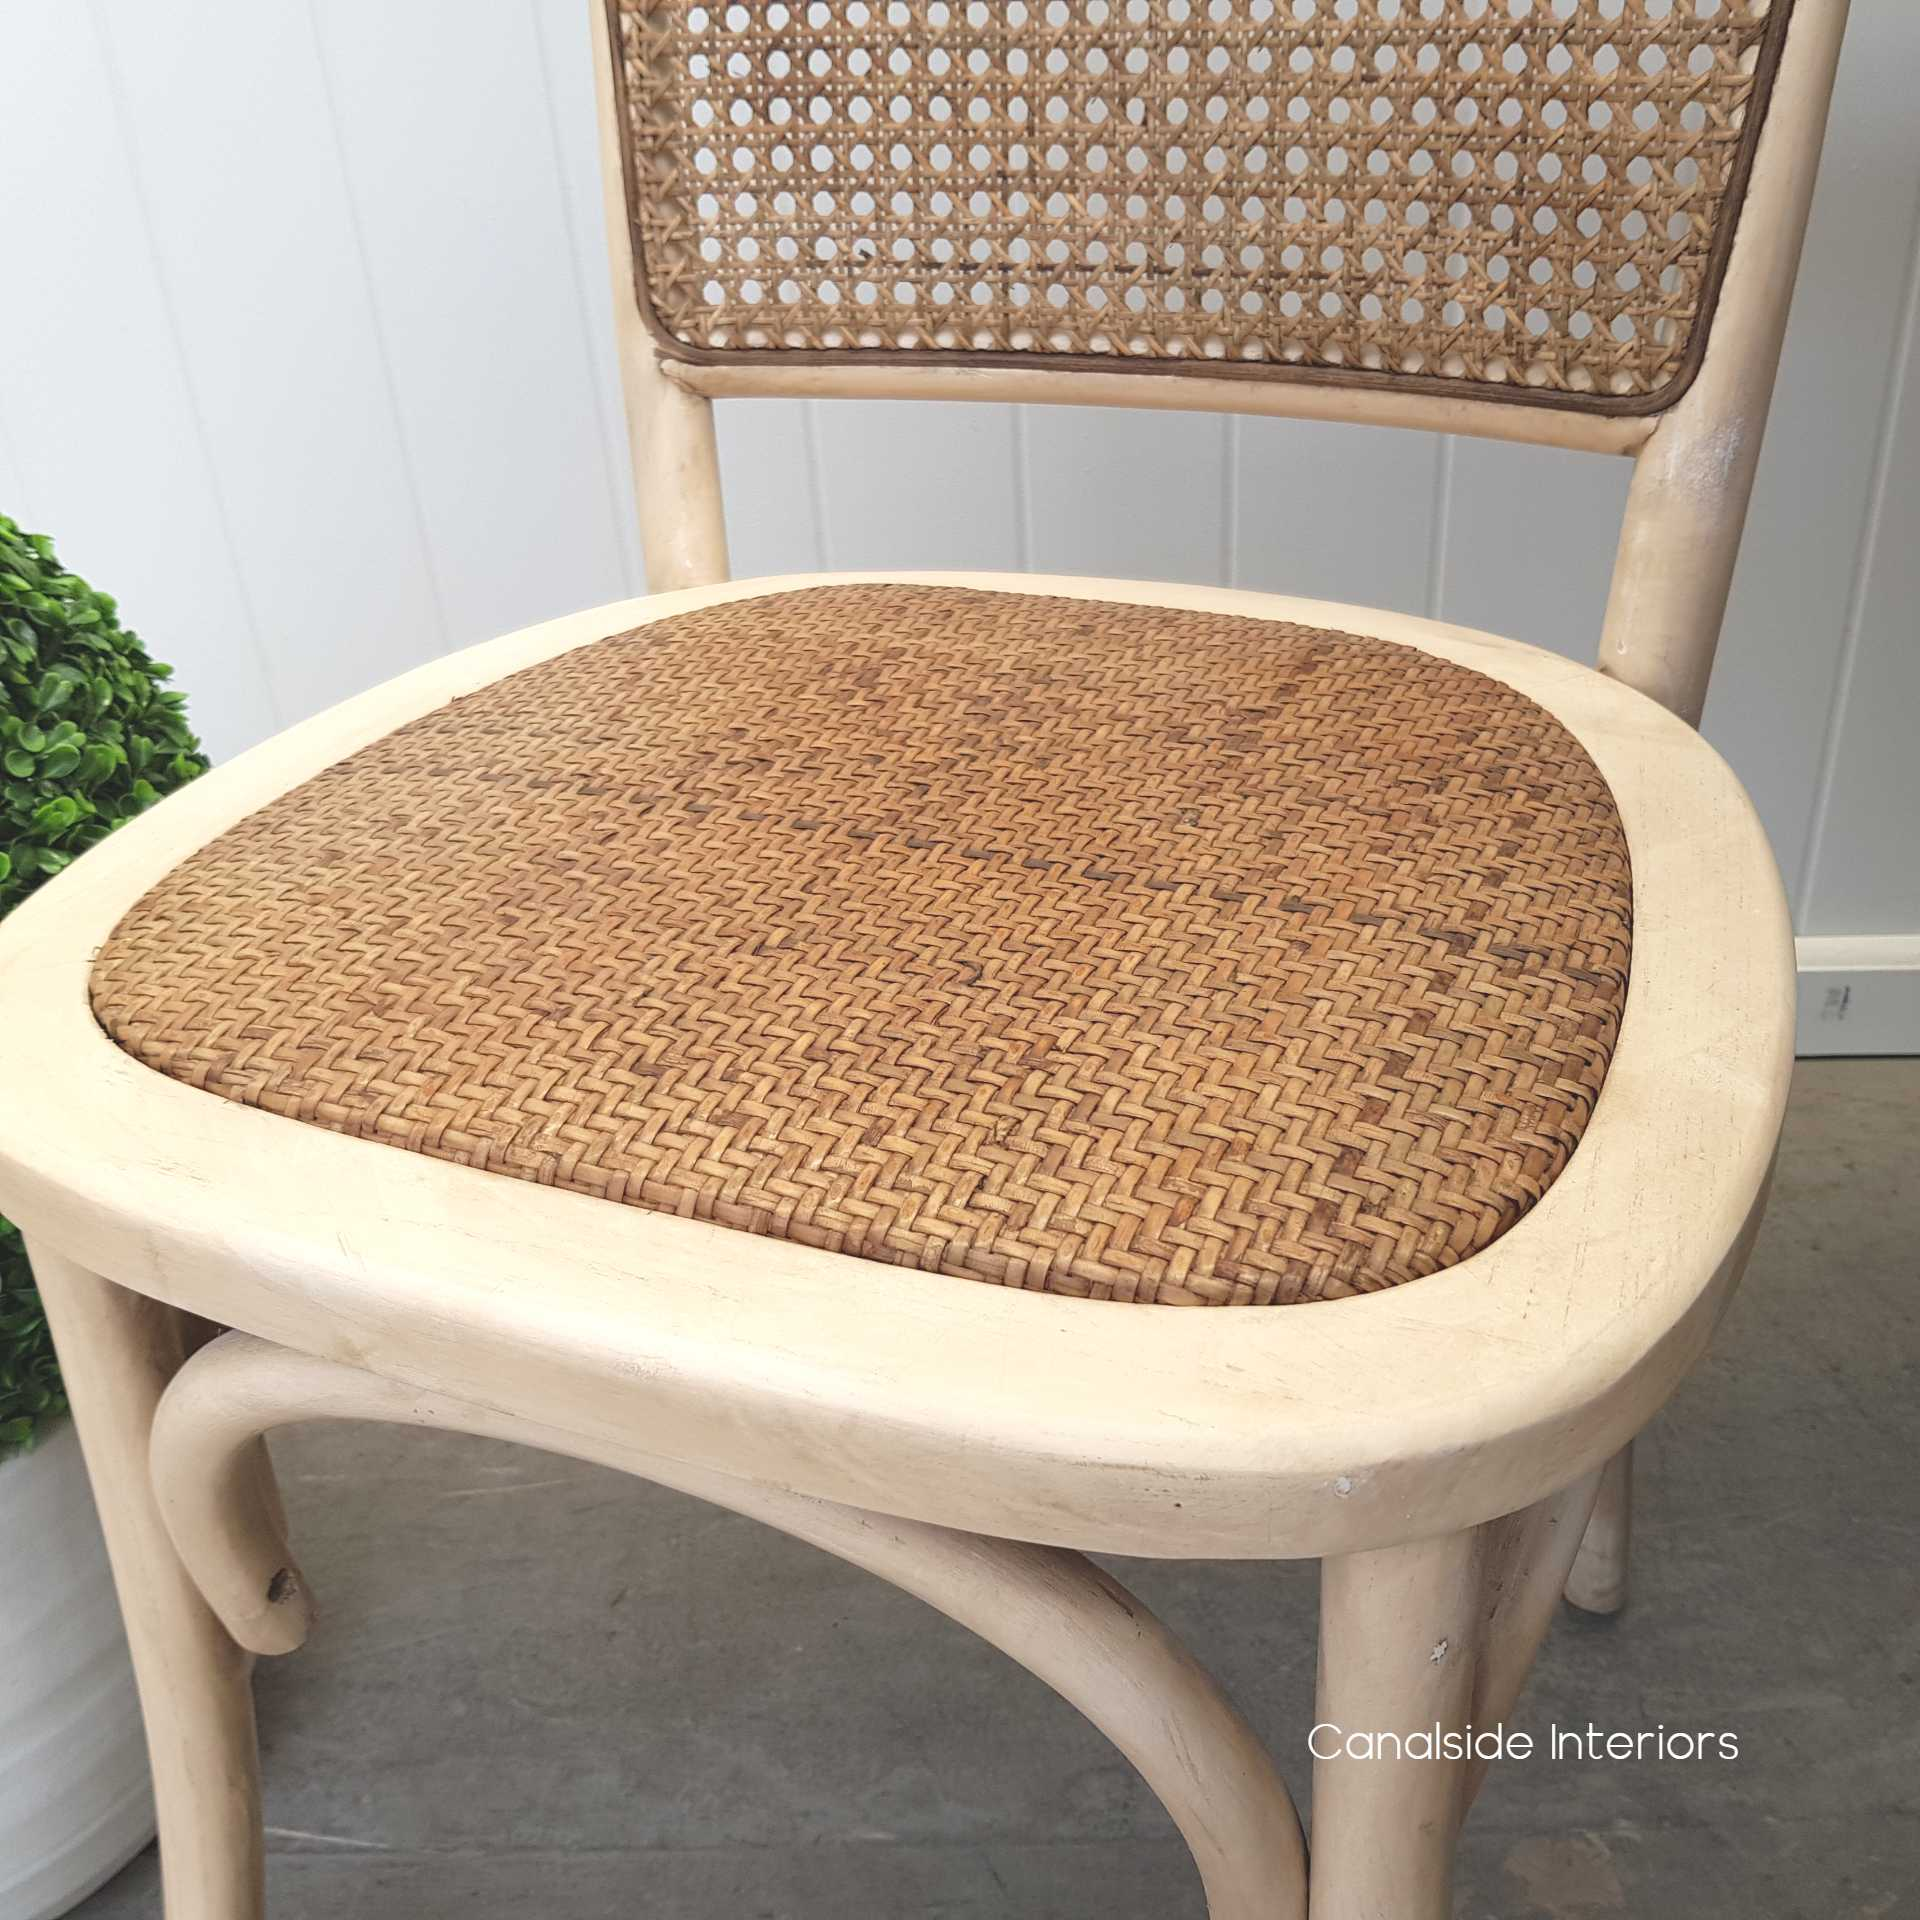 Saxon Bentwood Chair Antique White  Dining, CHAIRS, CAFE FURNITURE, HAMPTONS Style, PLANTATION Style, CHAIRS Dining, CAFE FURNITURE Stools & Chairs, PLANTATION STYLE